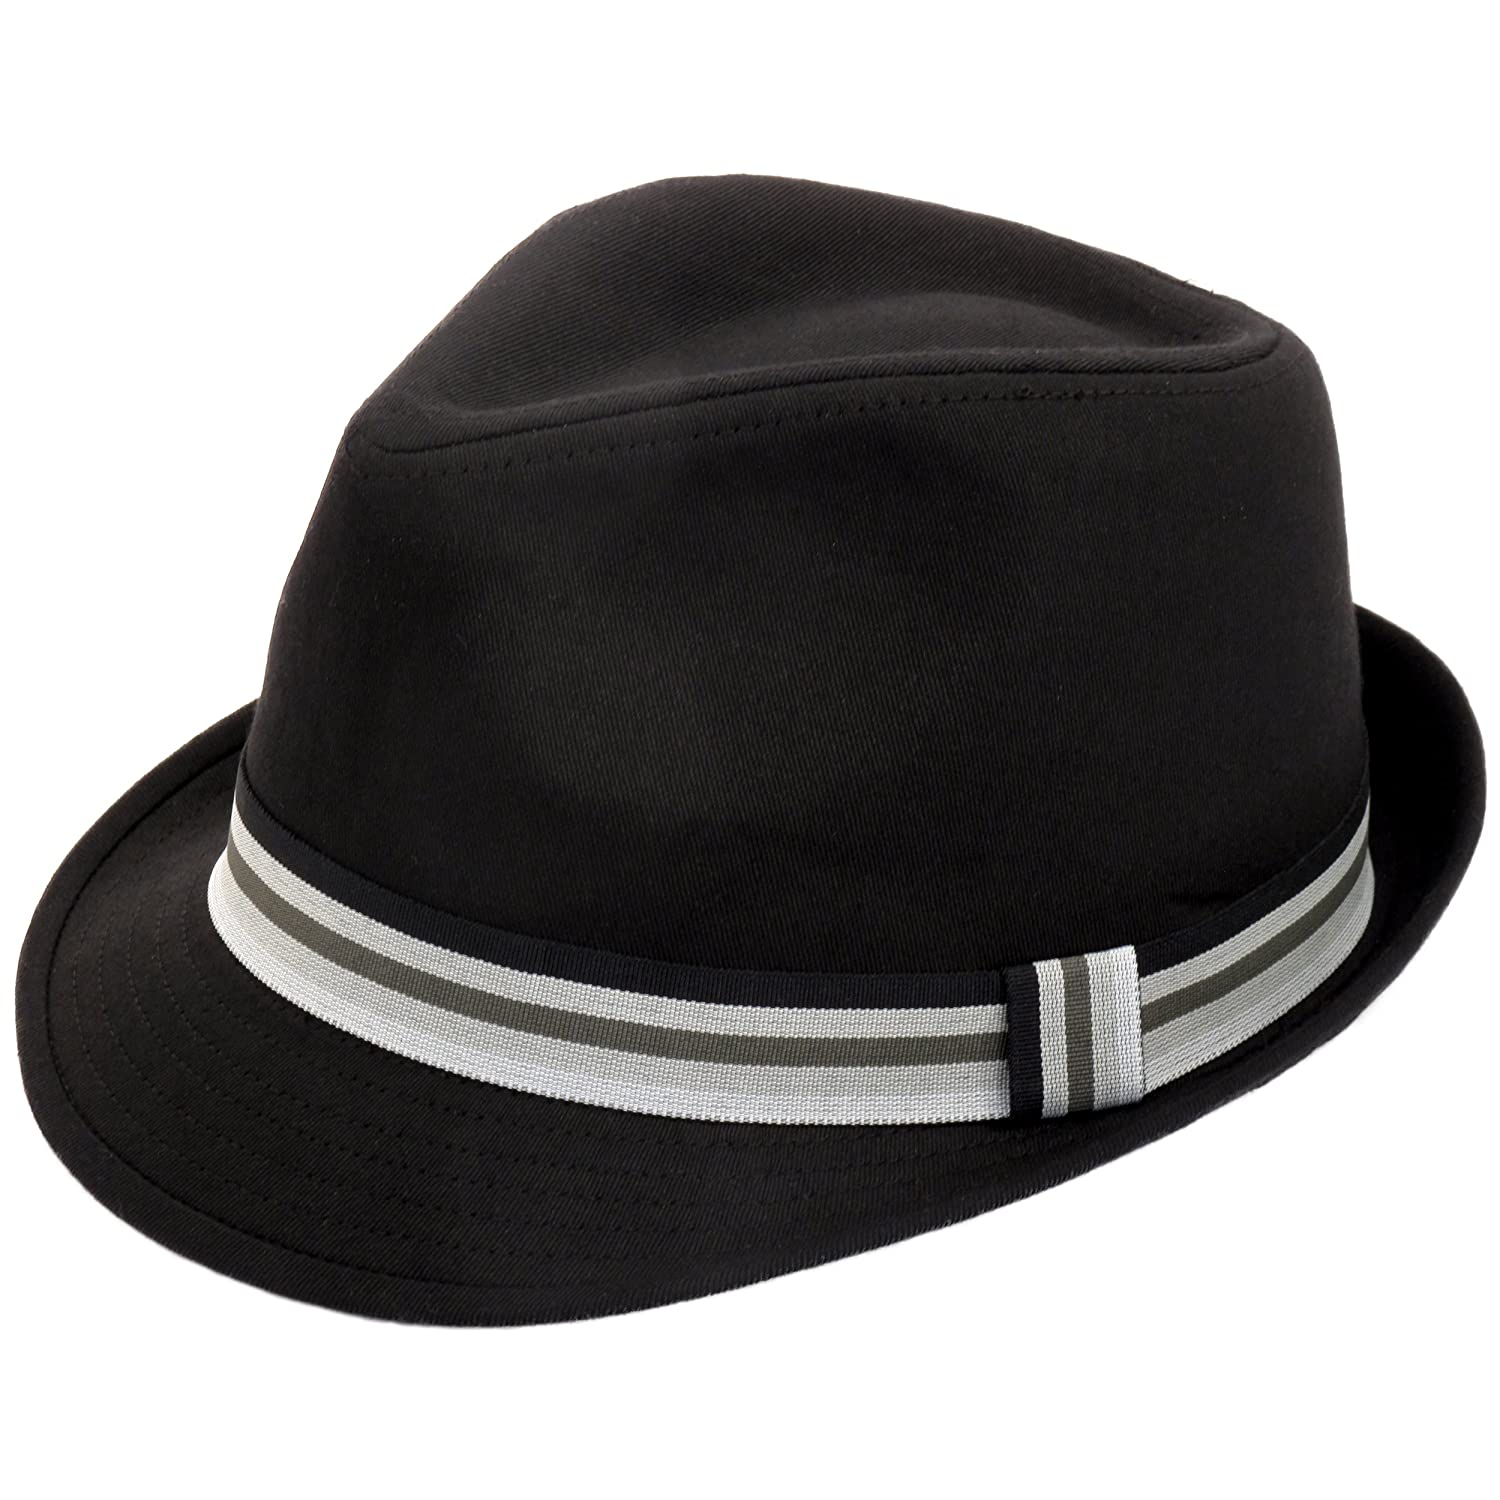 Classic black trilby hat with taffeta band